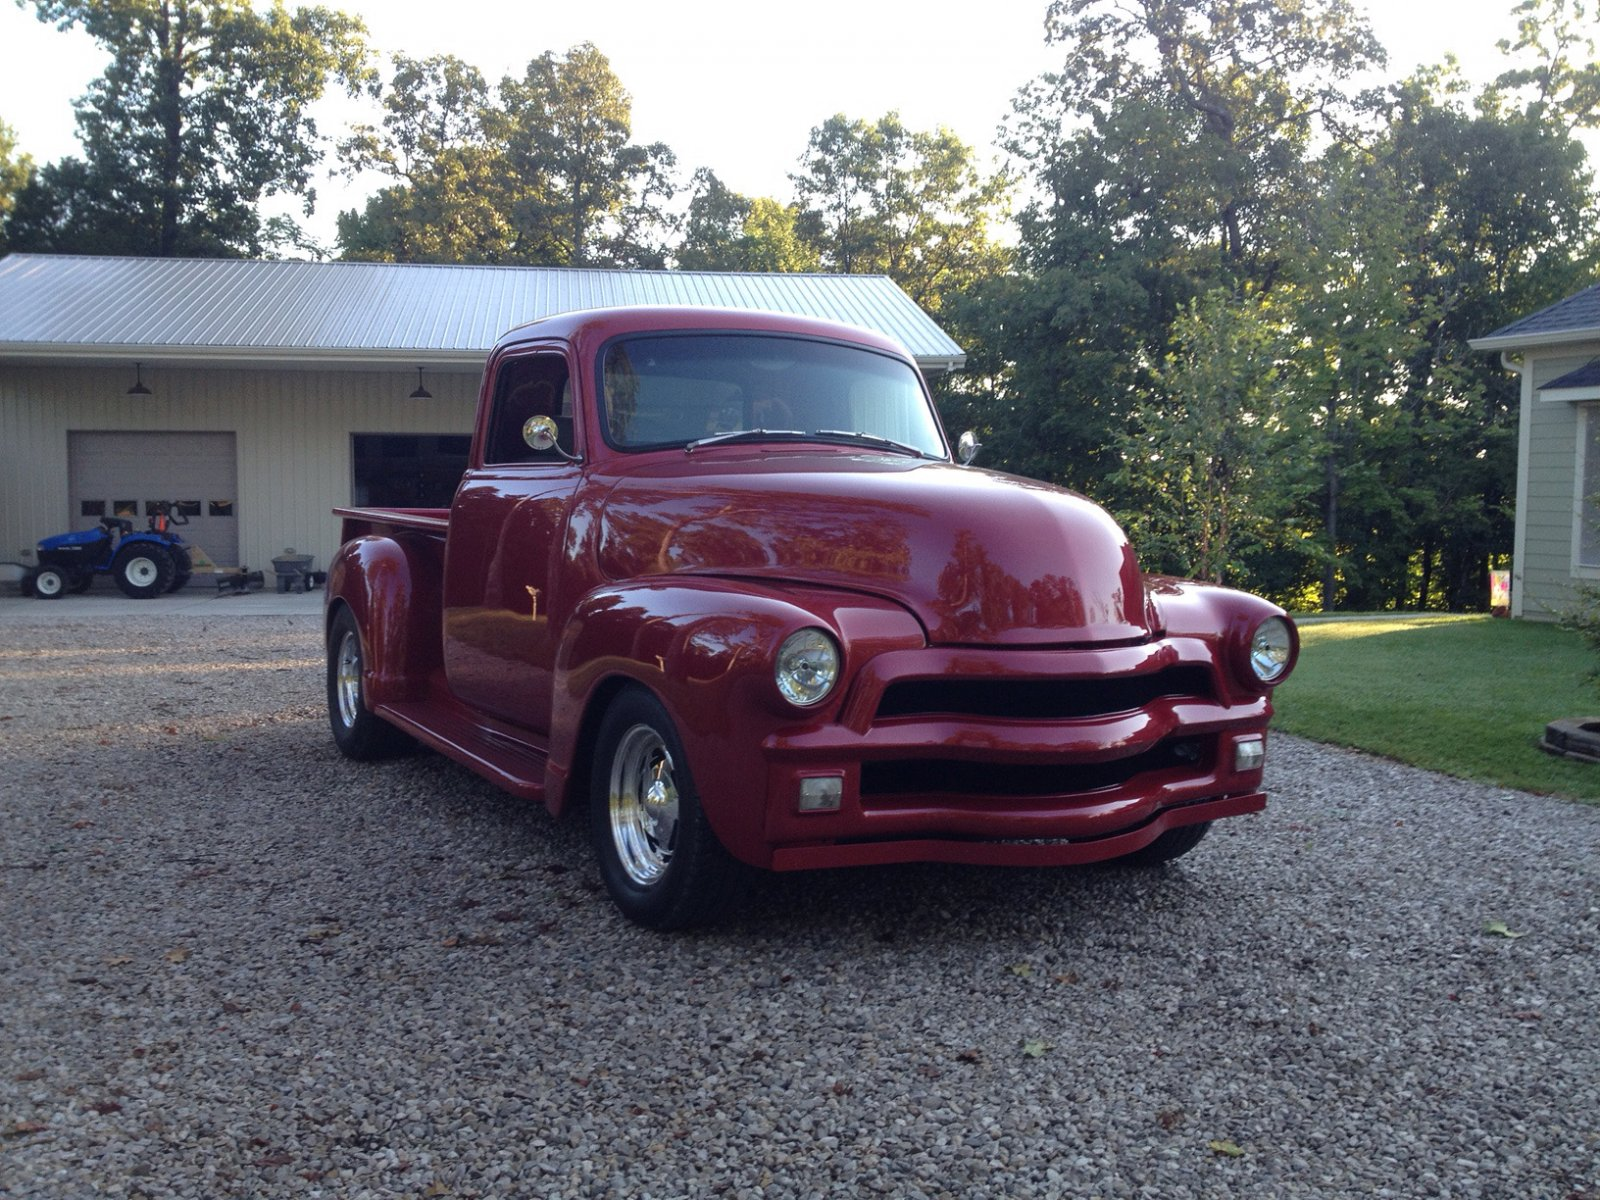 Click image for larger version  Name:54 Chevy-1.jpg Views:37 Size:475.1 KB ID:256434